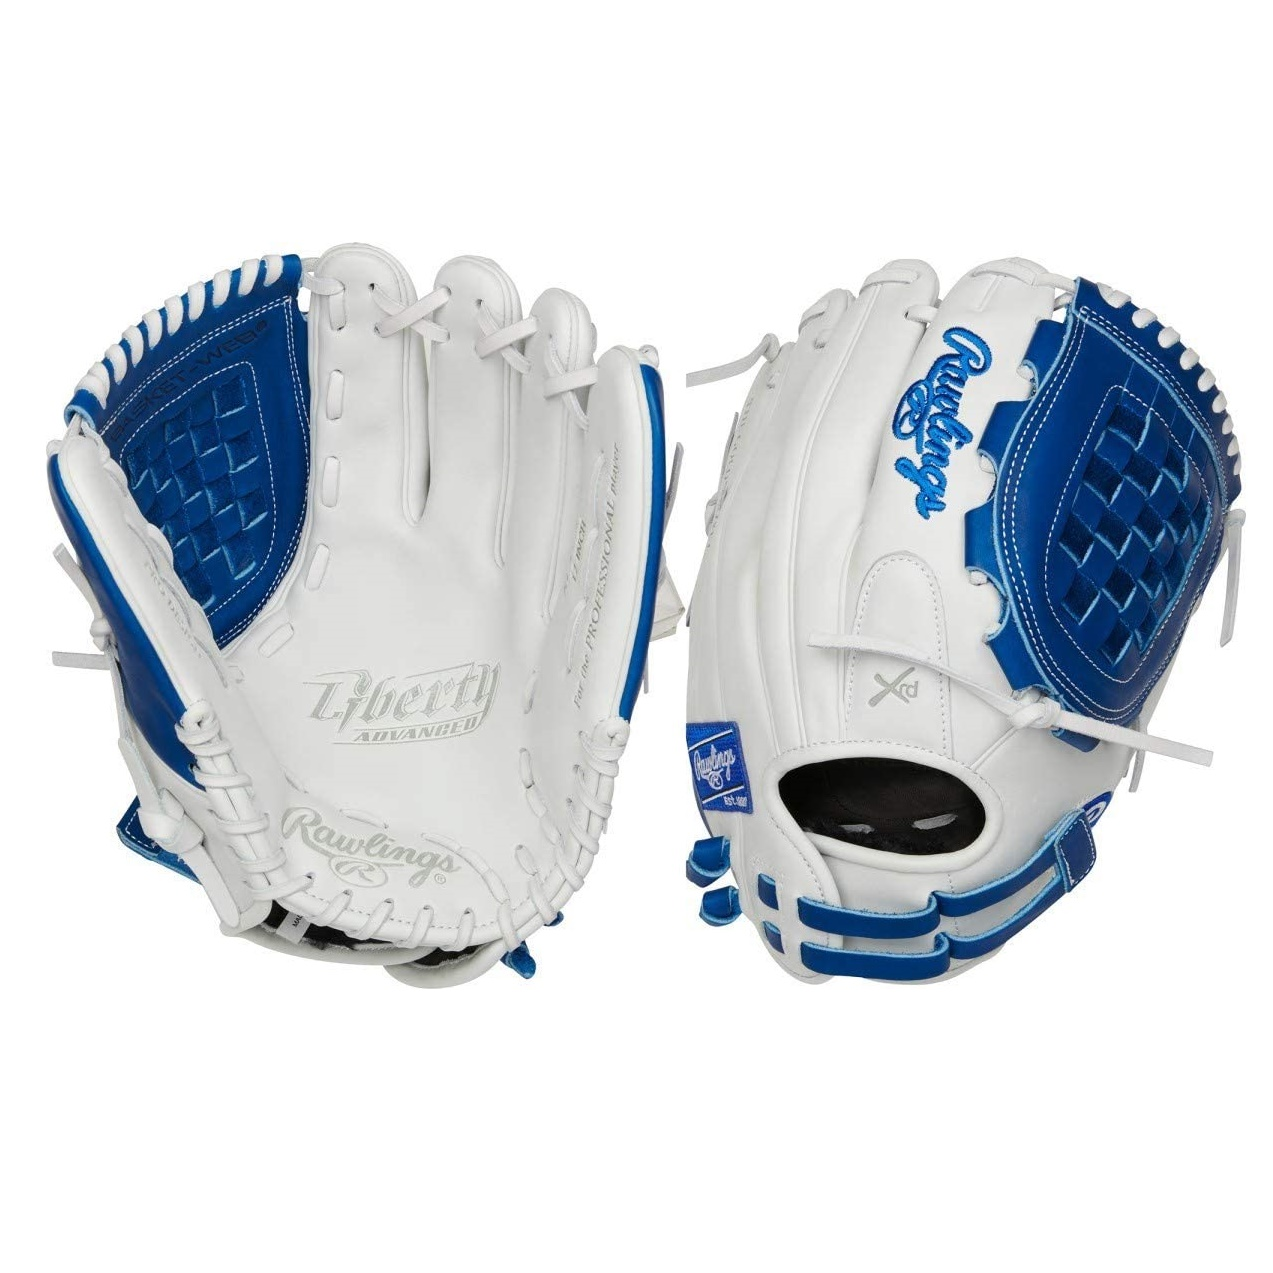 rawlings-liberty-advanced-color-series-12-fastpitch-softball-glove-right-hand-throw RLA120-3R-RightHandThrow   Hit the field in style with the Liberty Advanced Color Series